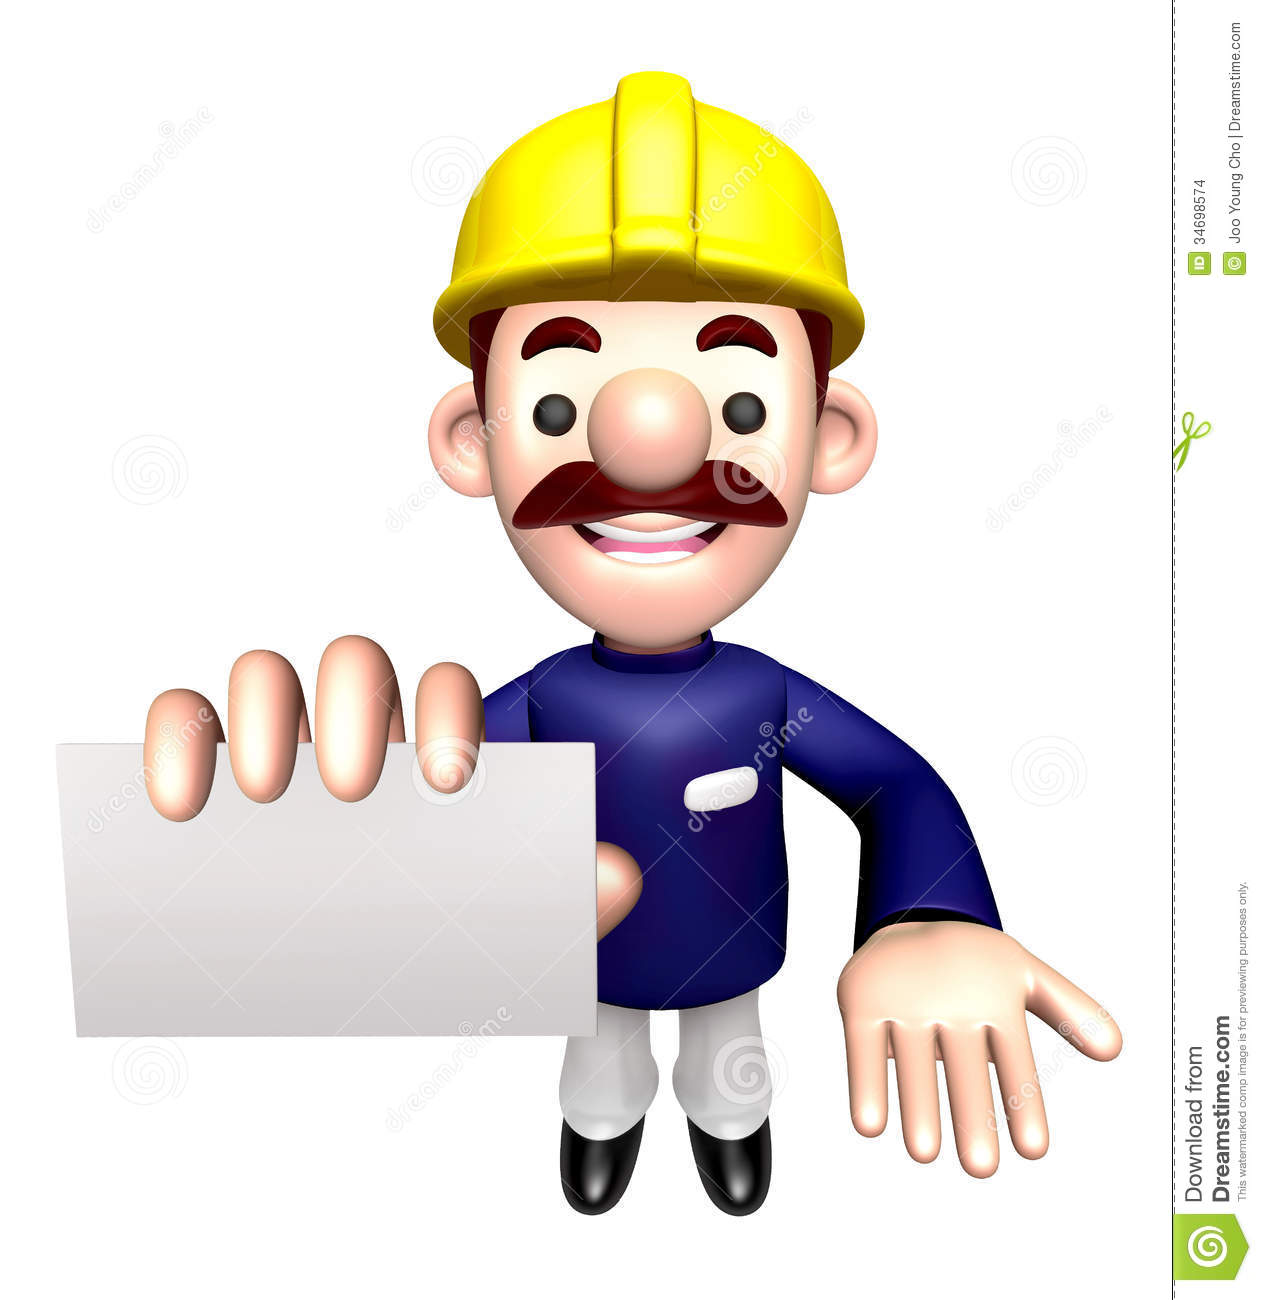 Character Design Job Offer : Construction site man showing a business card stock images